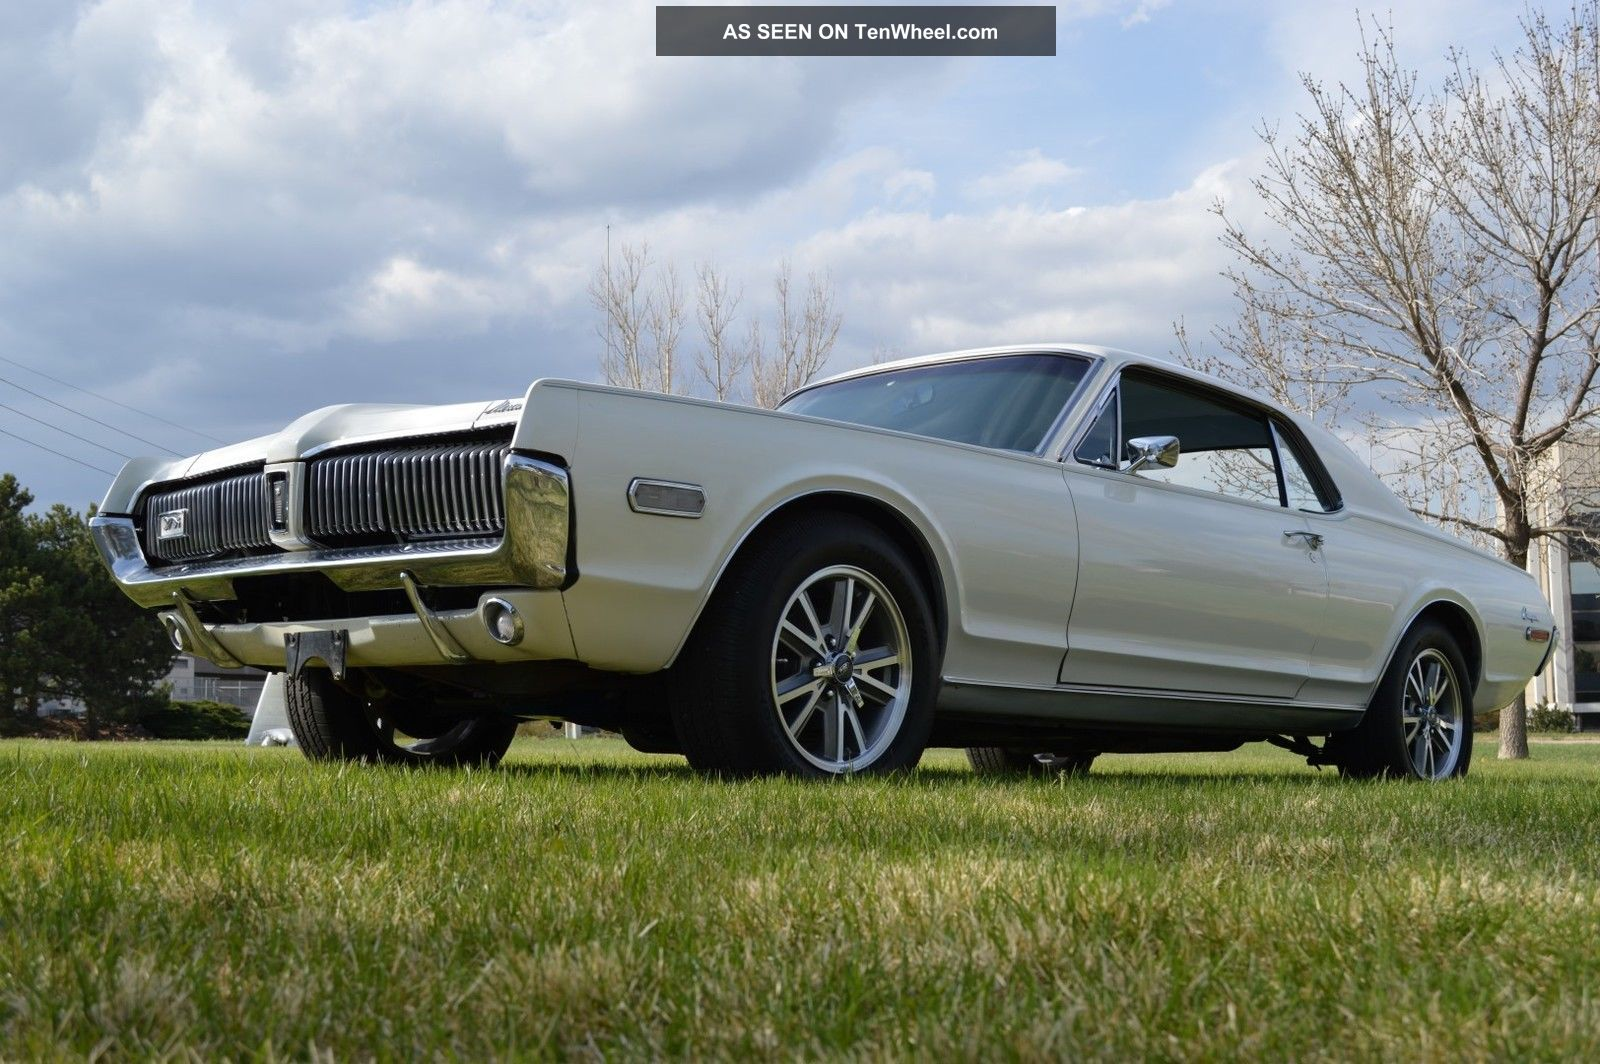 1968 Mercury Cougar 302 Ci Coupe 2dr. Cougar photo